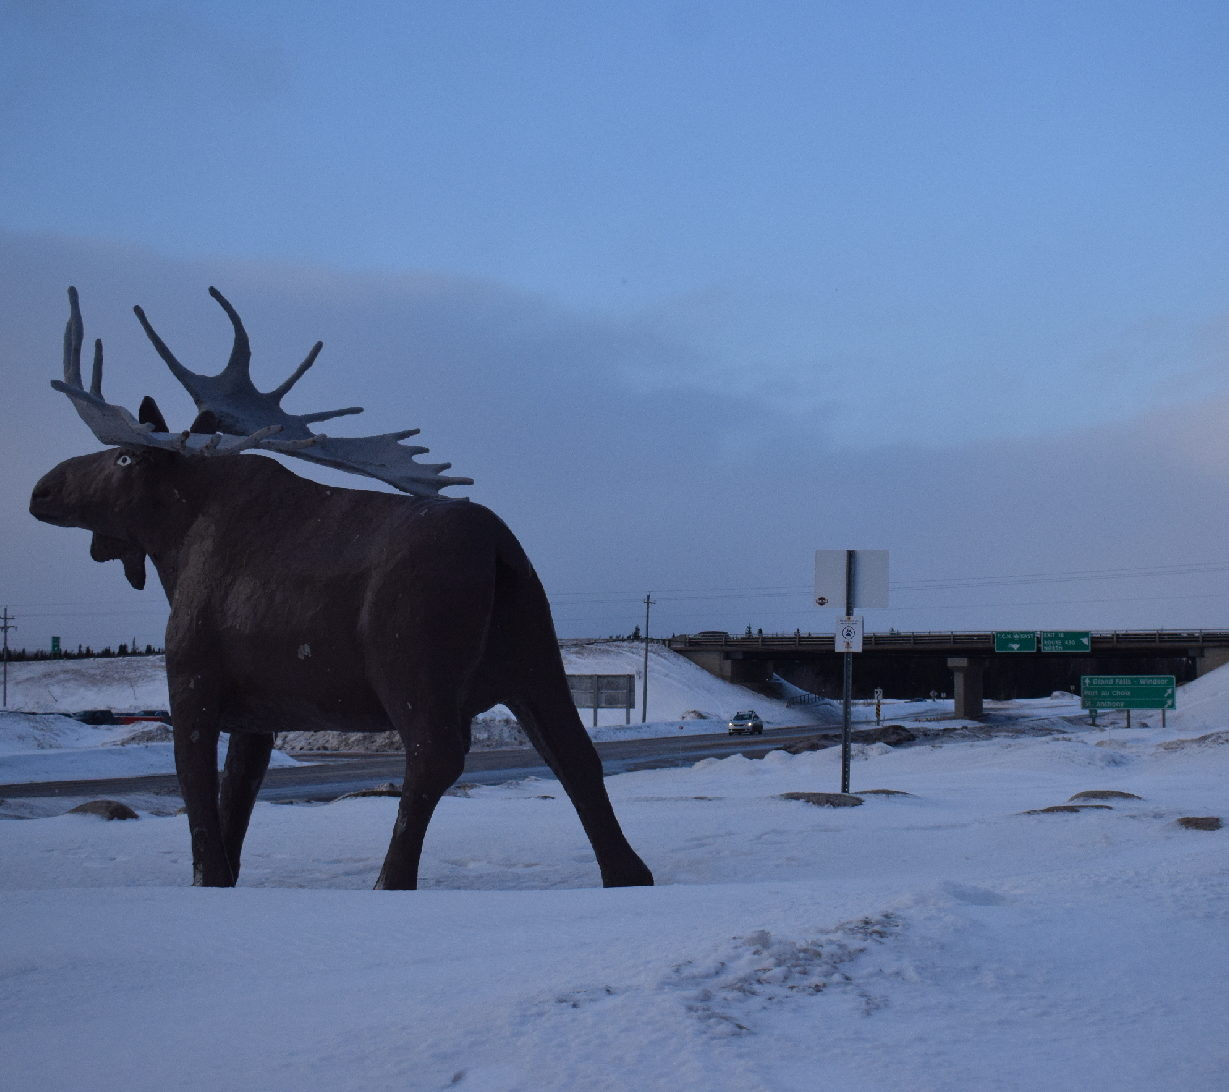 moose statue stands along Deer Lake highway